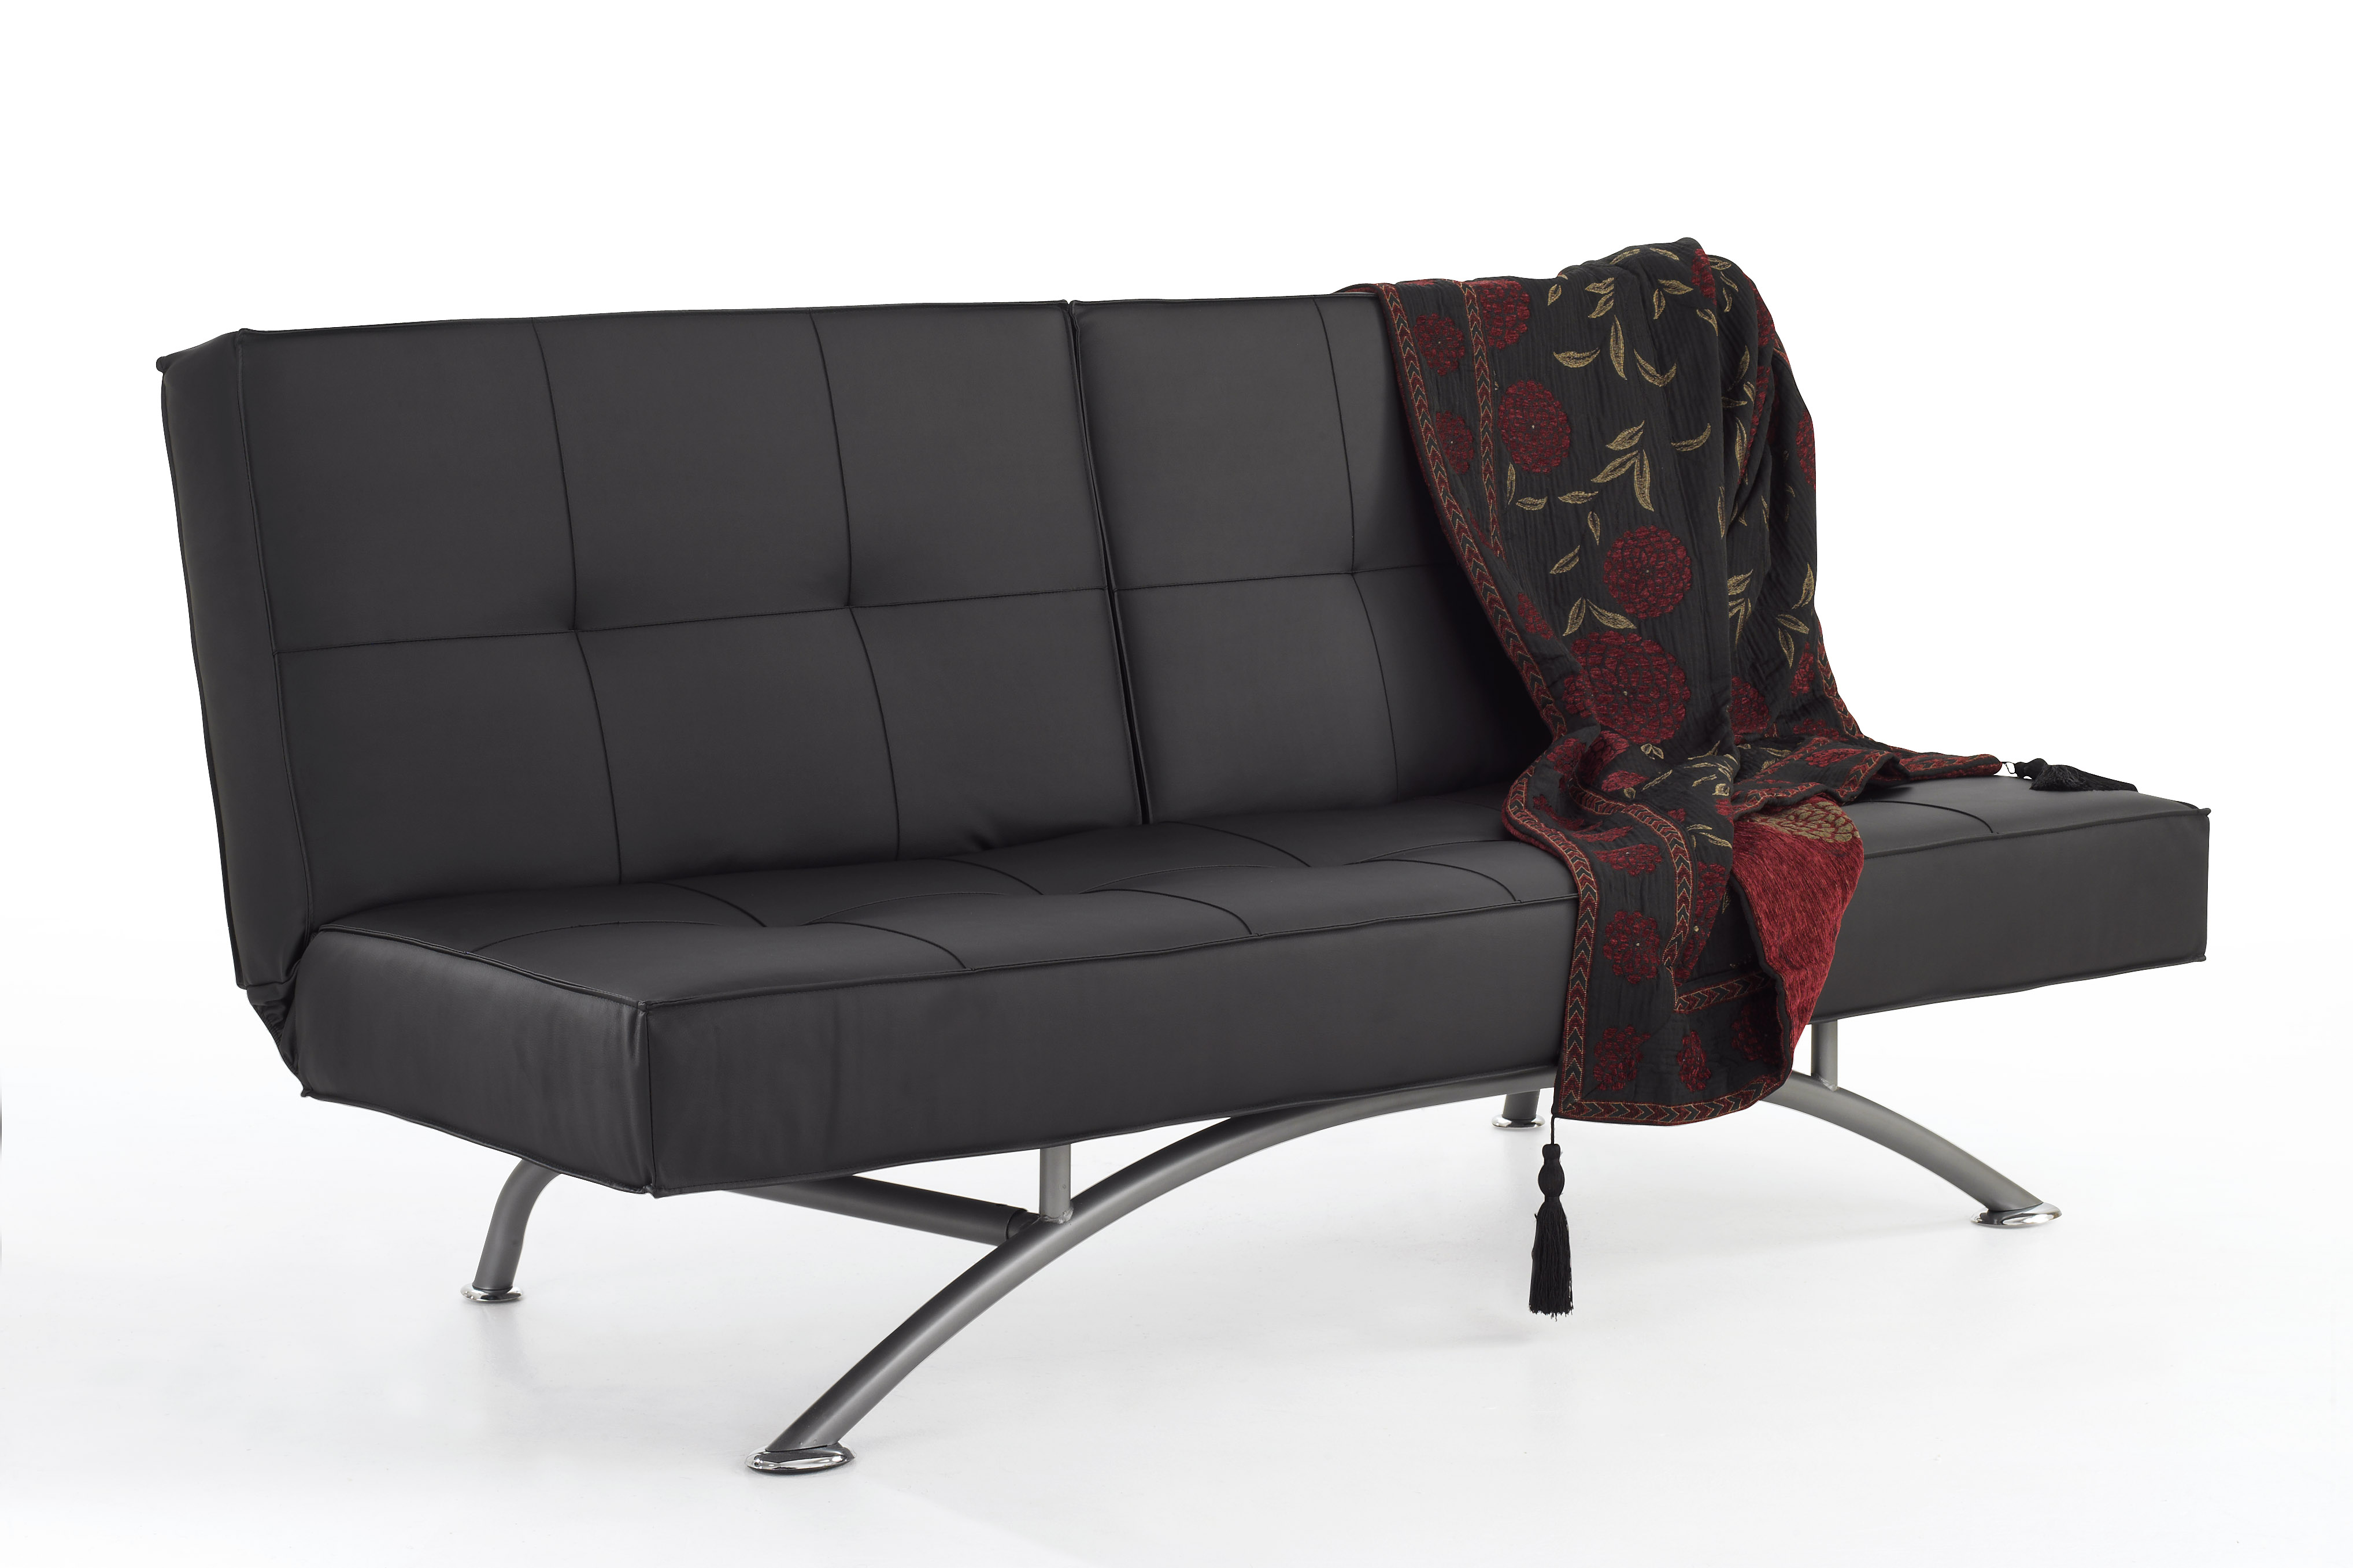 Black Modern Sofa Bed Sheets (View 2 of 10)